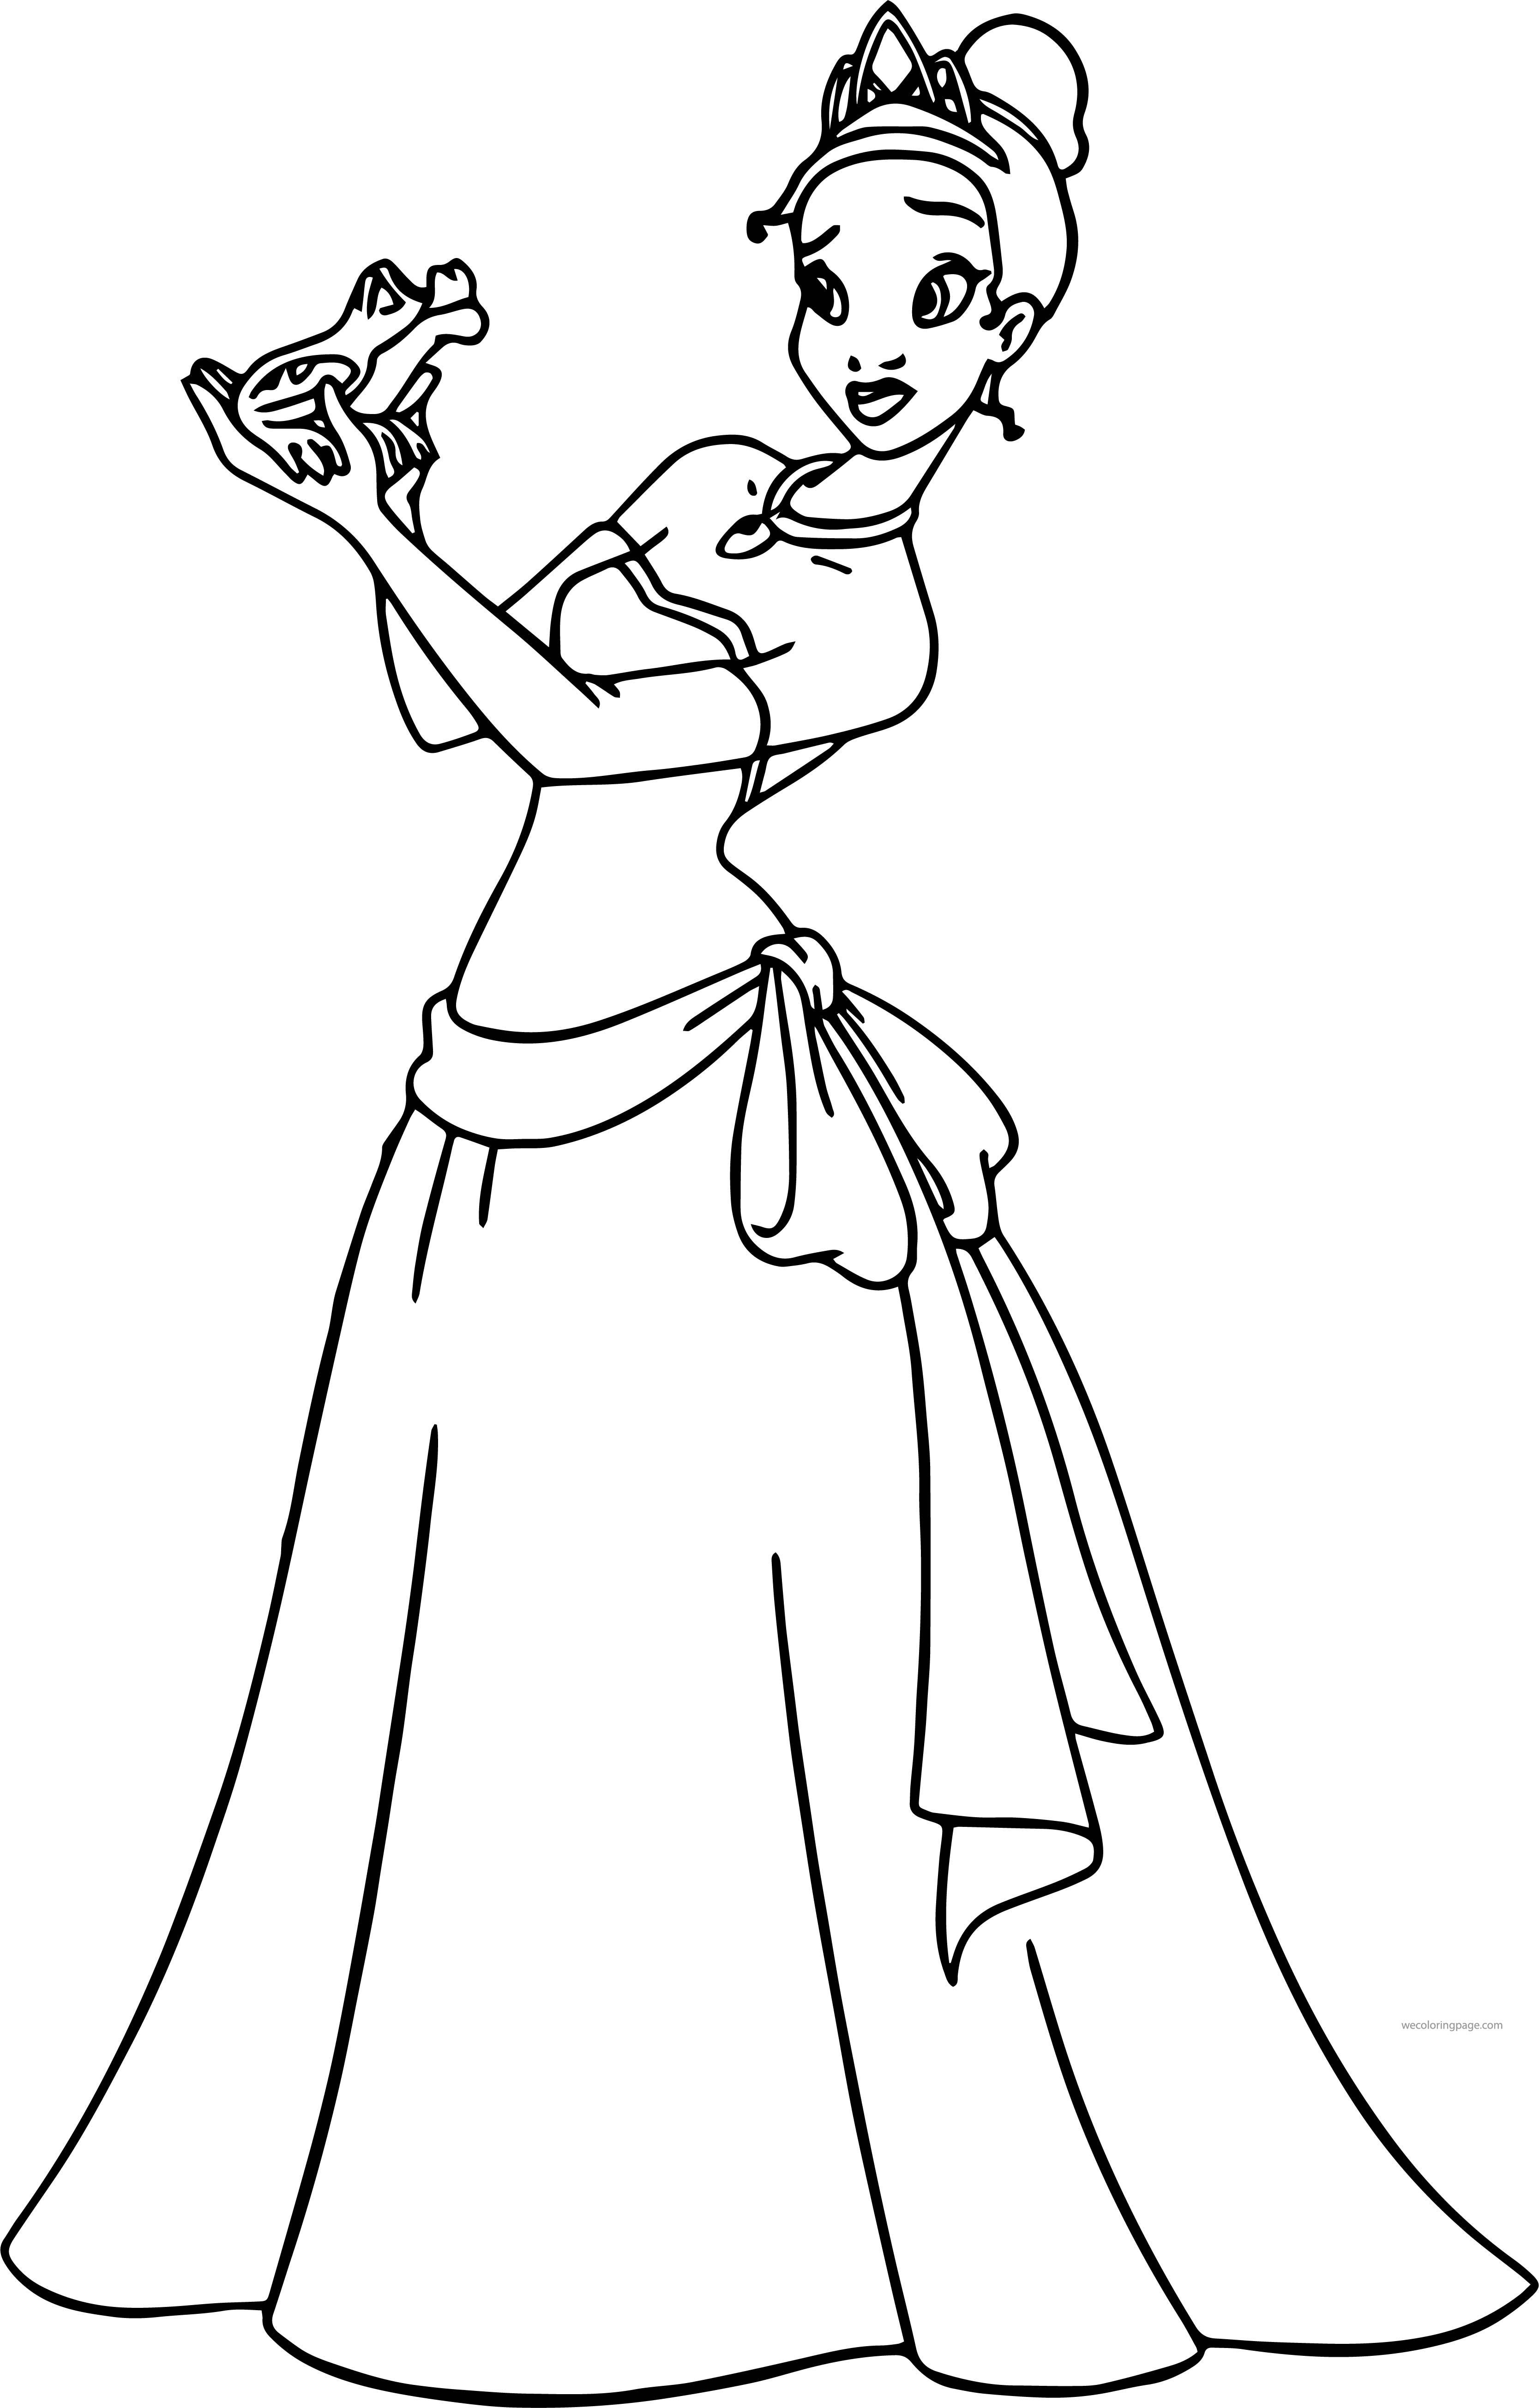 Disney The Princess And The Frog Kiss Coloring Page   Pinterest   Frogs